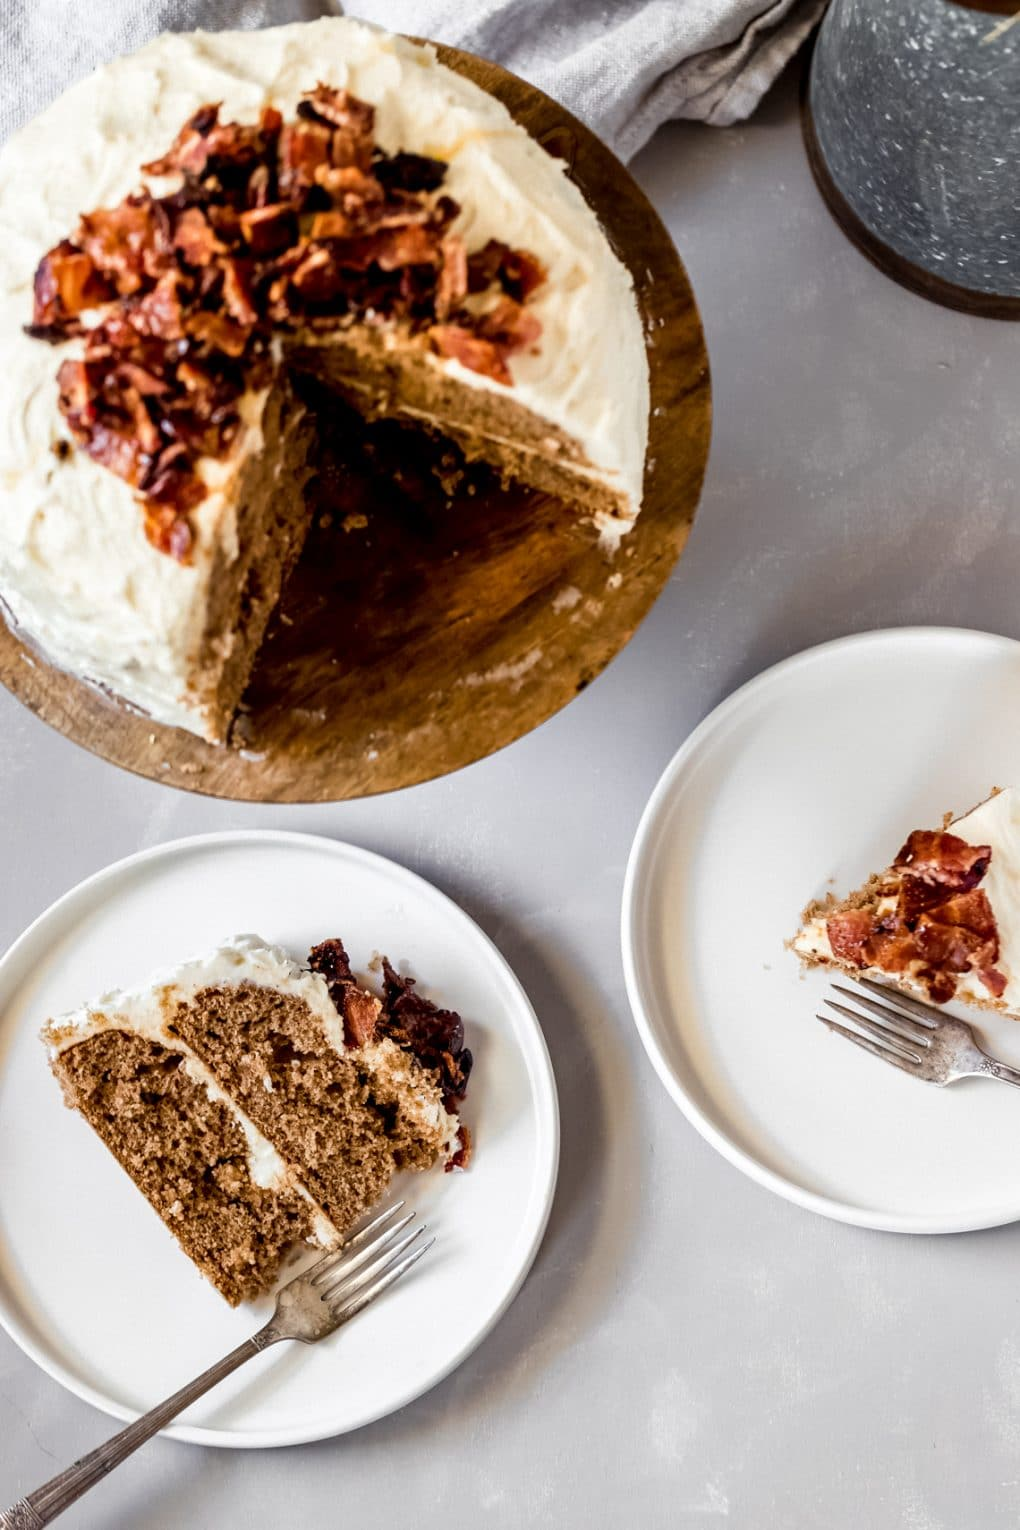 two slices of maple bacon cake on a plate